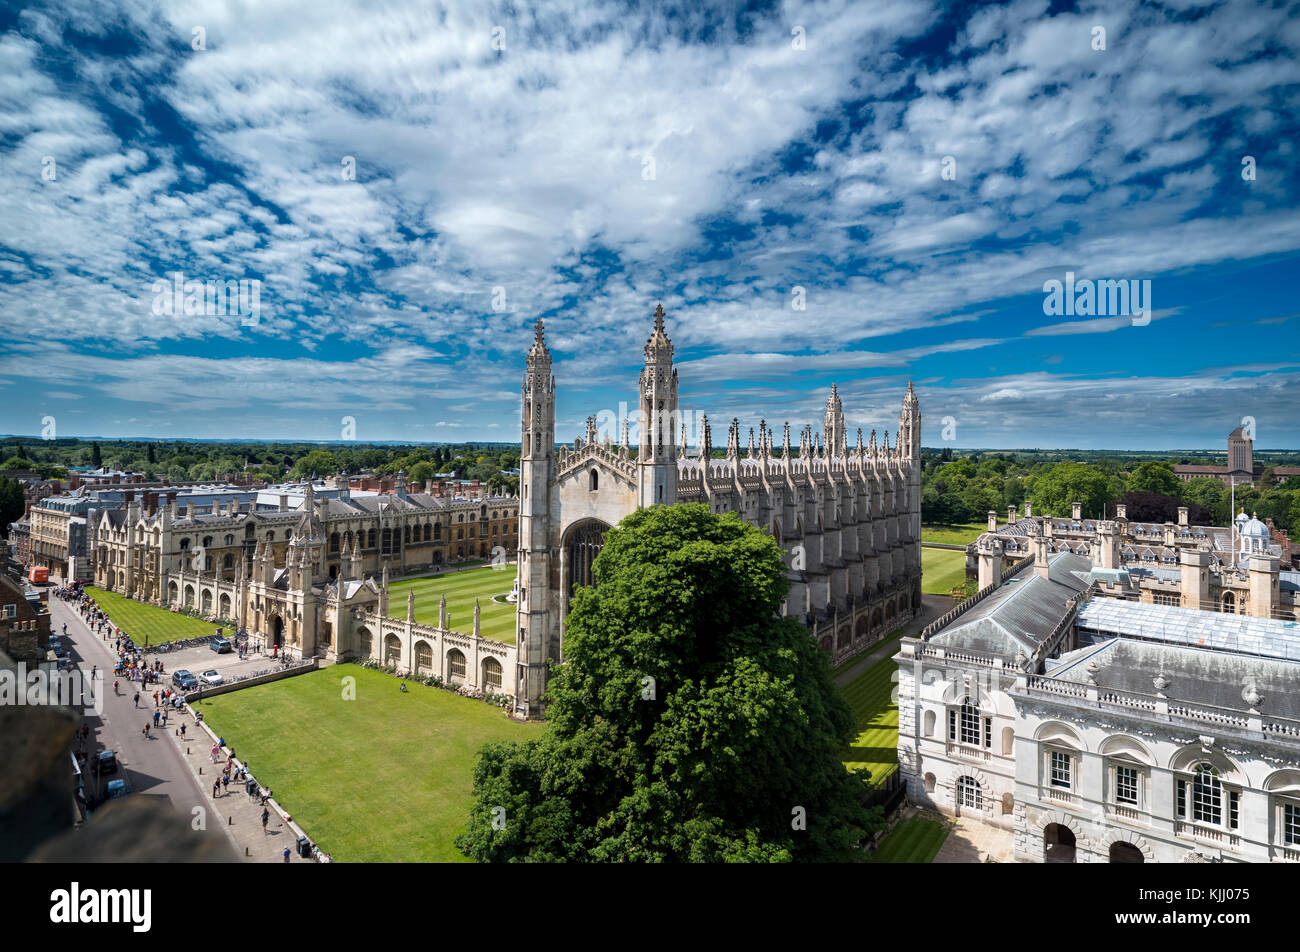 KING'S COLLEGE (1441) CAMBRIDGE  CAMBRIDGESHIRE         UNITED KINGDOM - Stock Image